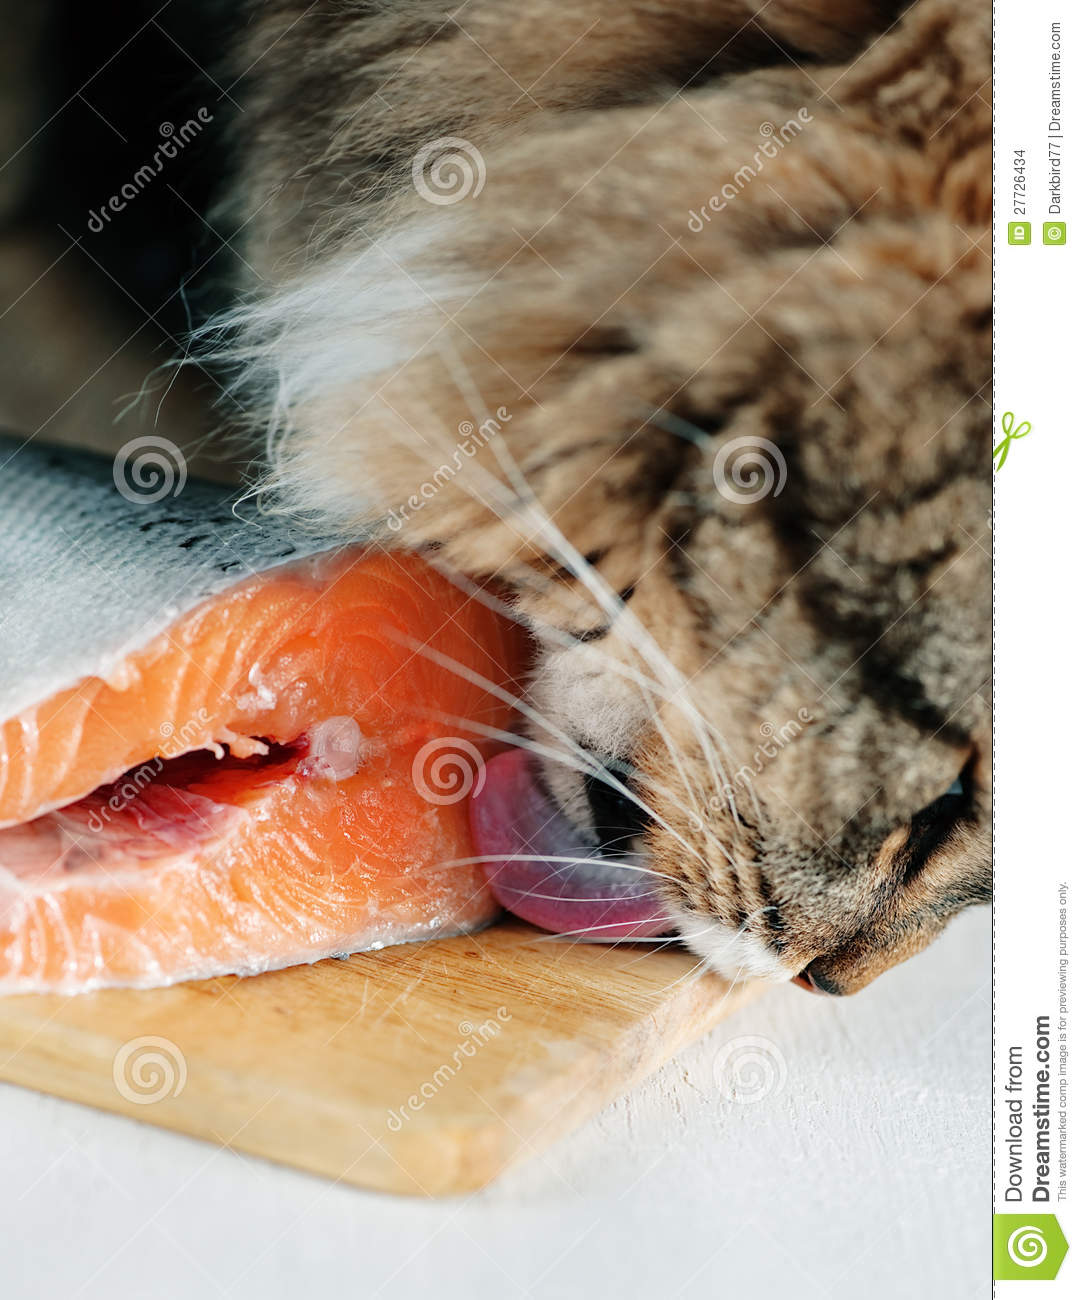 Cat licking piece of fish stock images image 27726434 for Piece of fish